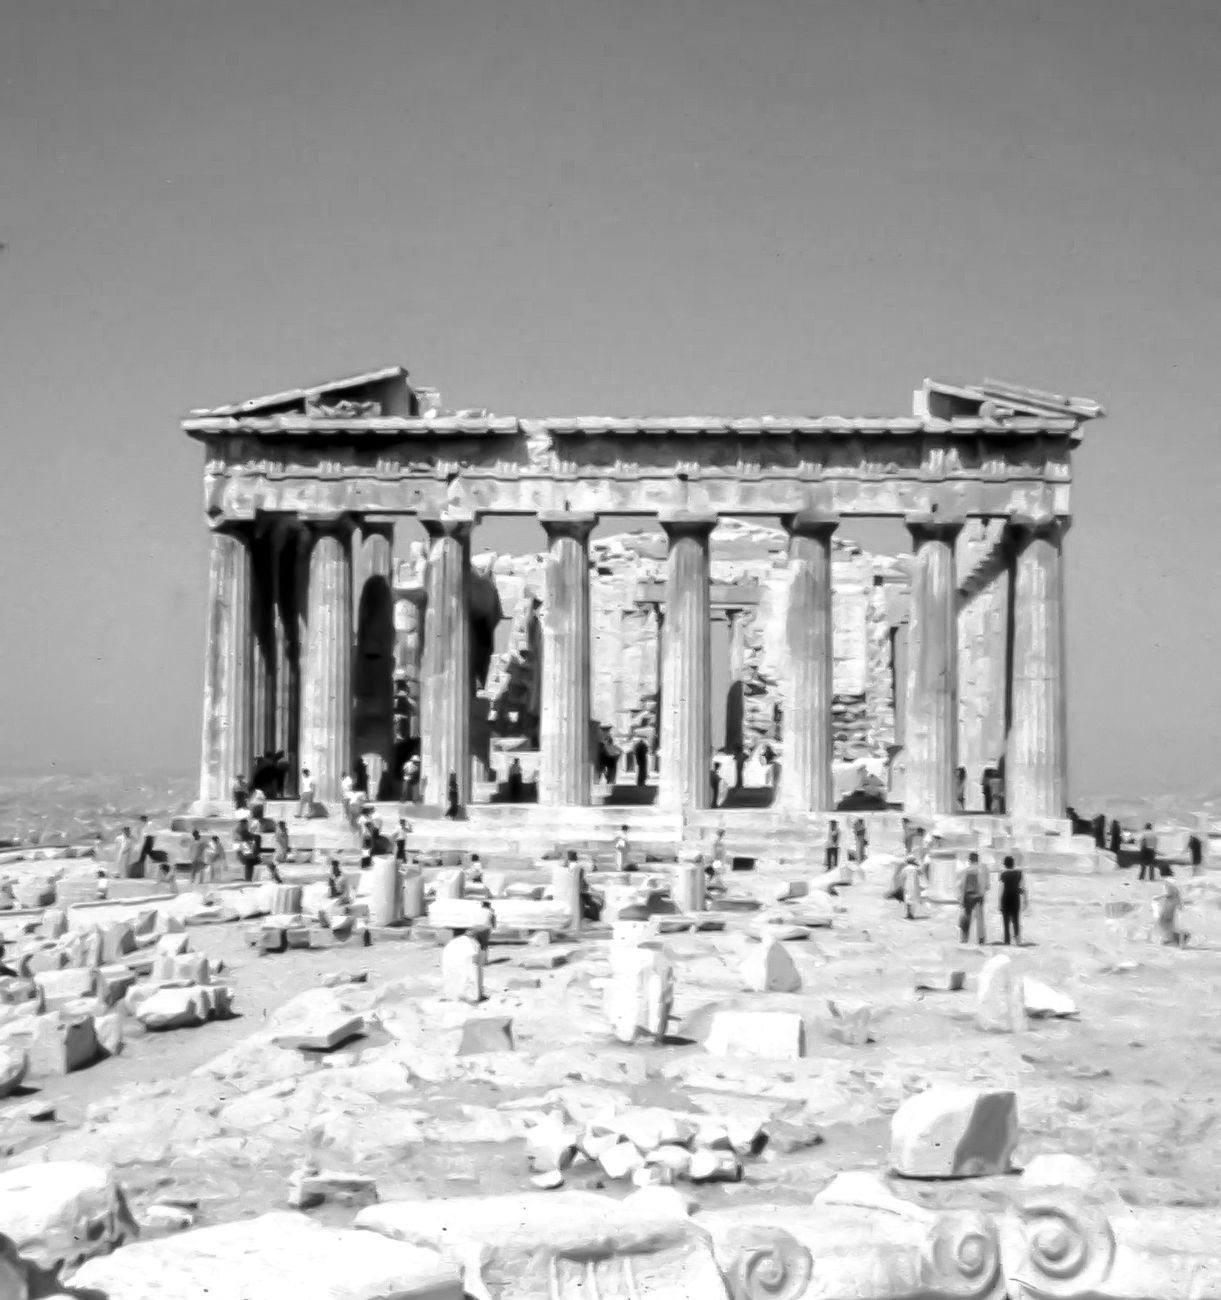 The back of the Parthenon-